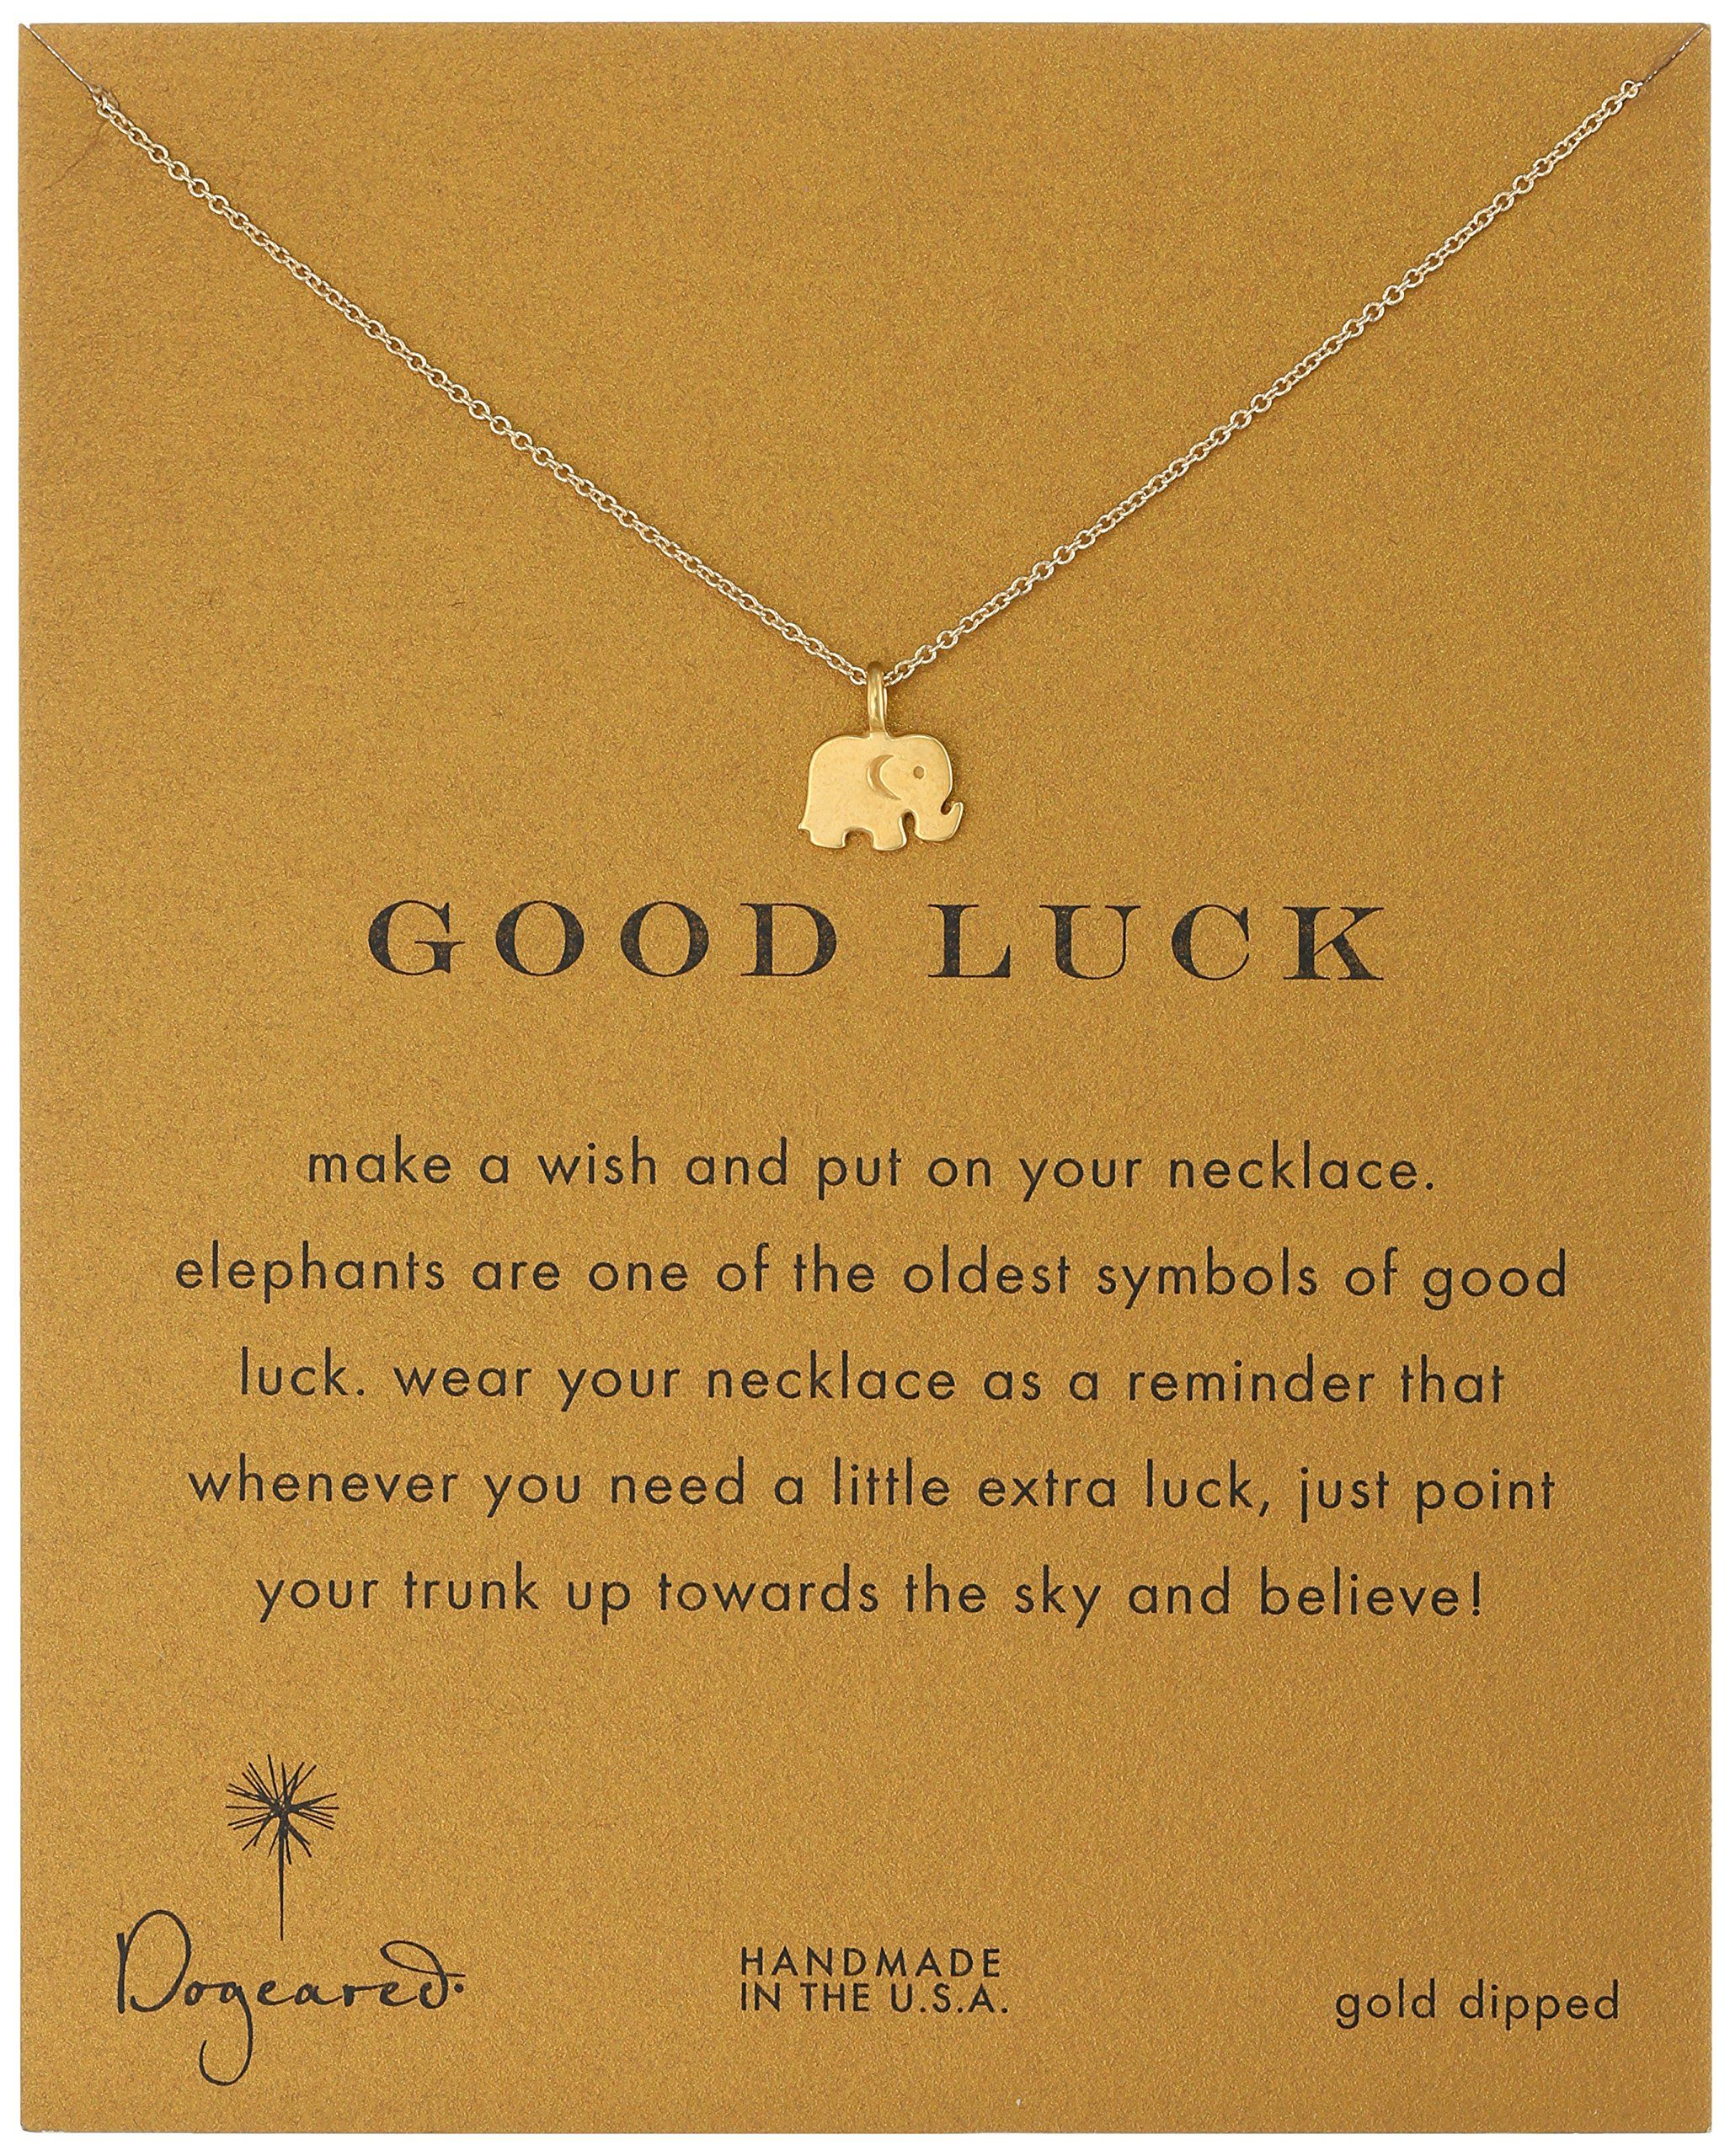 Dogeared reminder good luck gold plated sterling silver elephant dogeared reminder good luck gold plated sterling silver elephant pendant necklace aloadofball Images